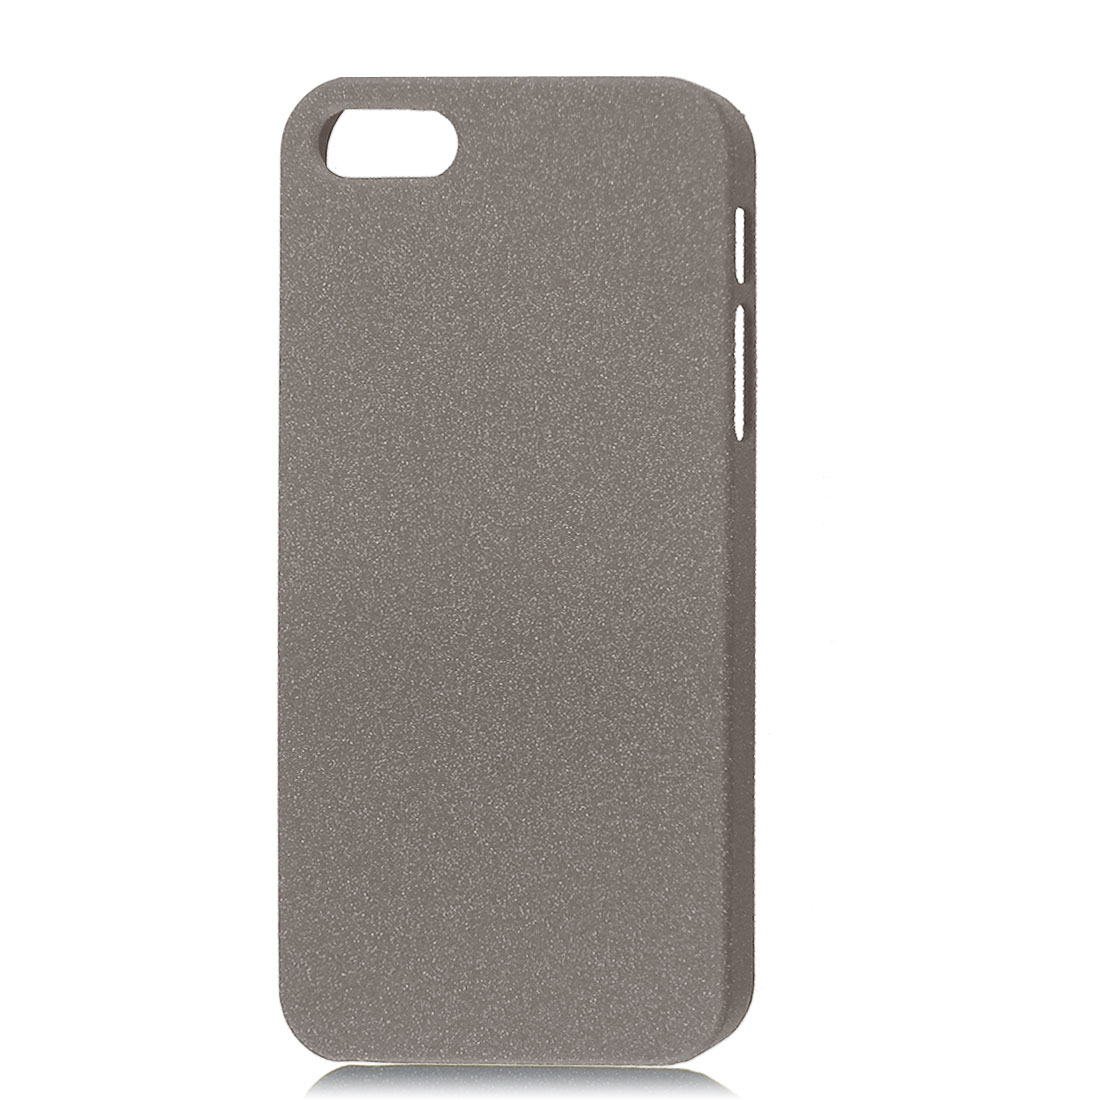 Taupe Hard Back Case Cover Protector for iPhone 5 5G 5th Gen